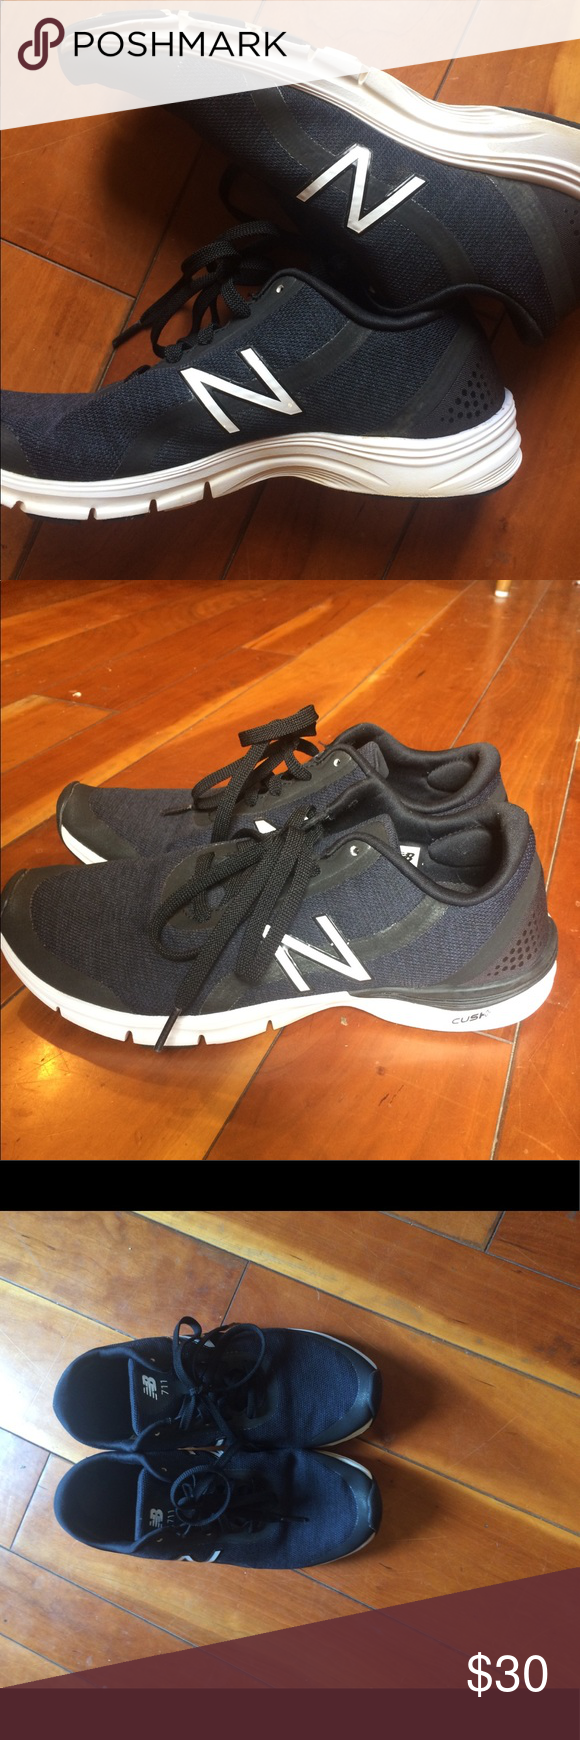 10cea9685f6c New Balance 711v3 fitness shoe. Women s size 9 Black fitness shoe perfect for  non-running activities. Sadly